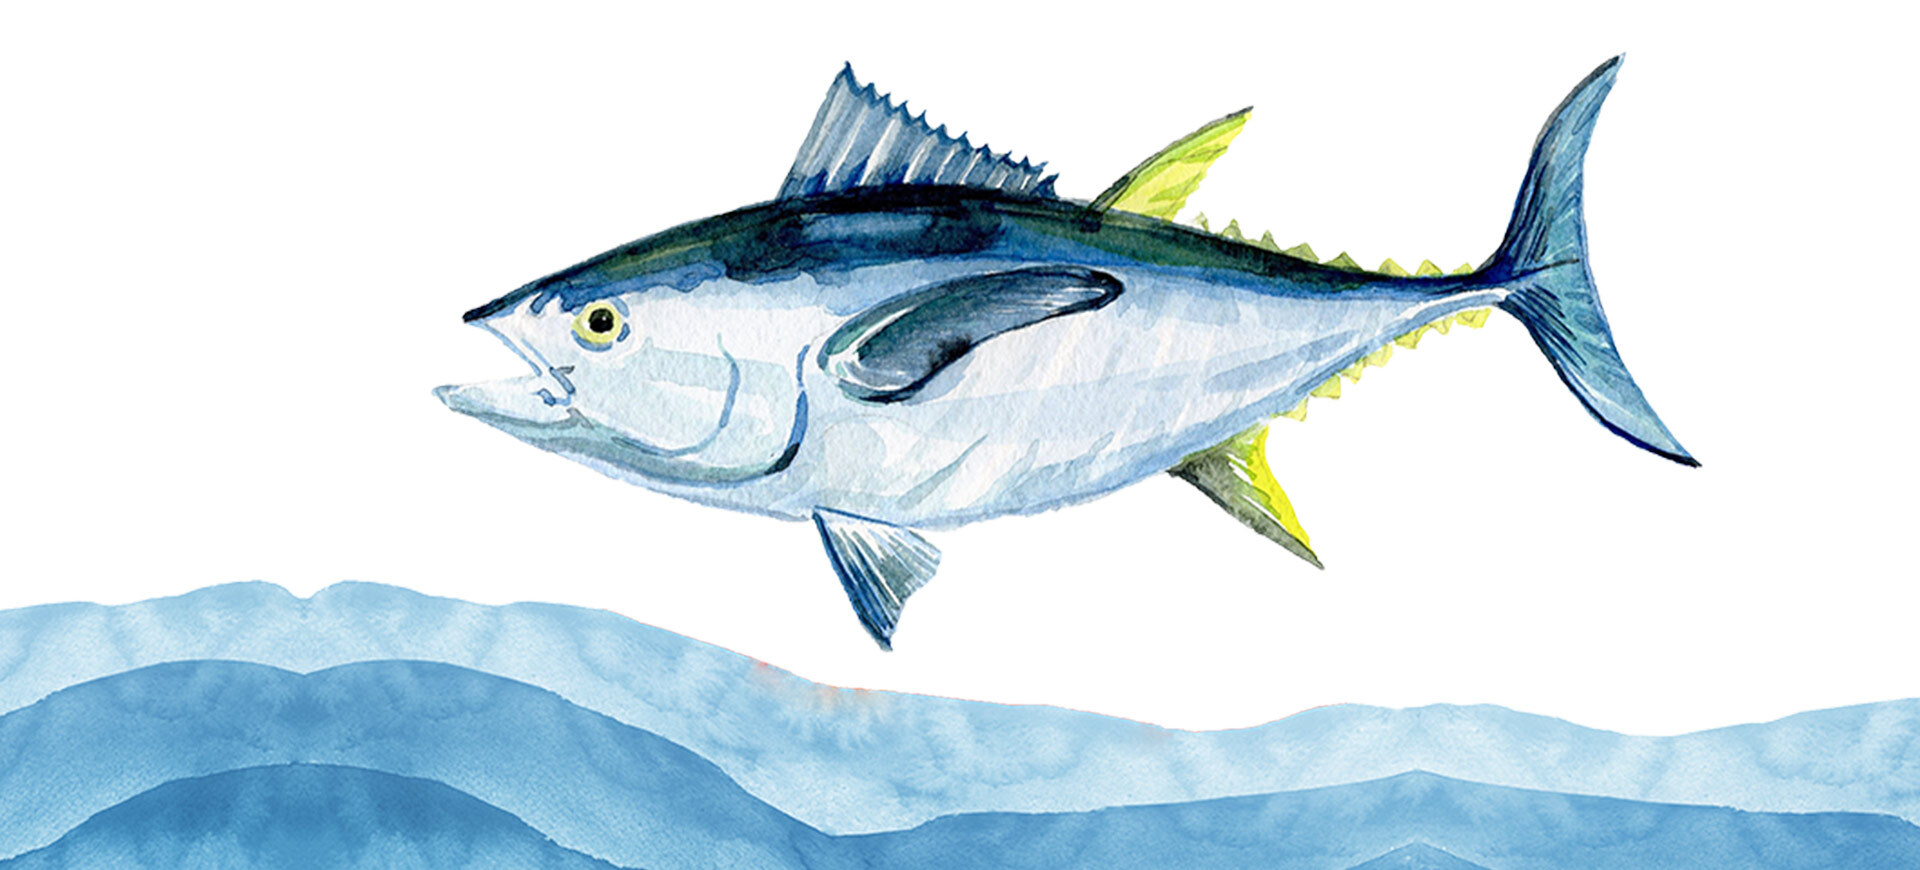 On World Tuna Day, Let's Celebrate the Health Benefits & Versatility of Tuna